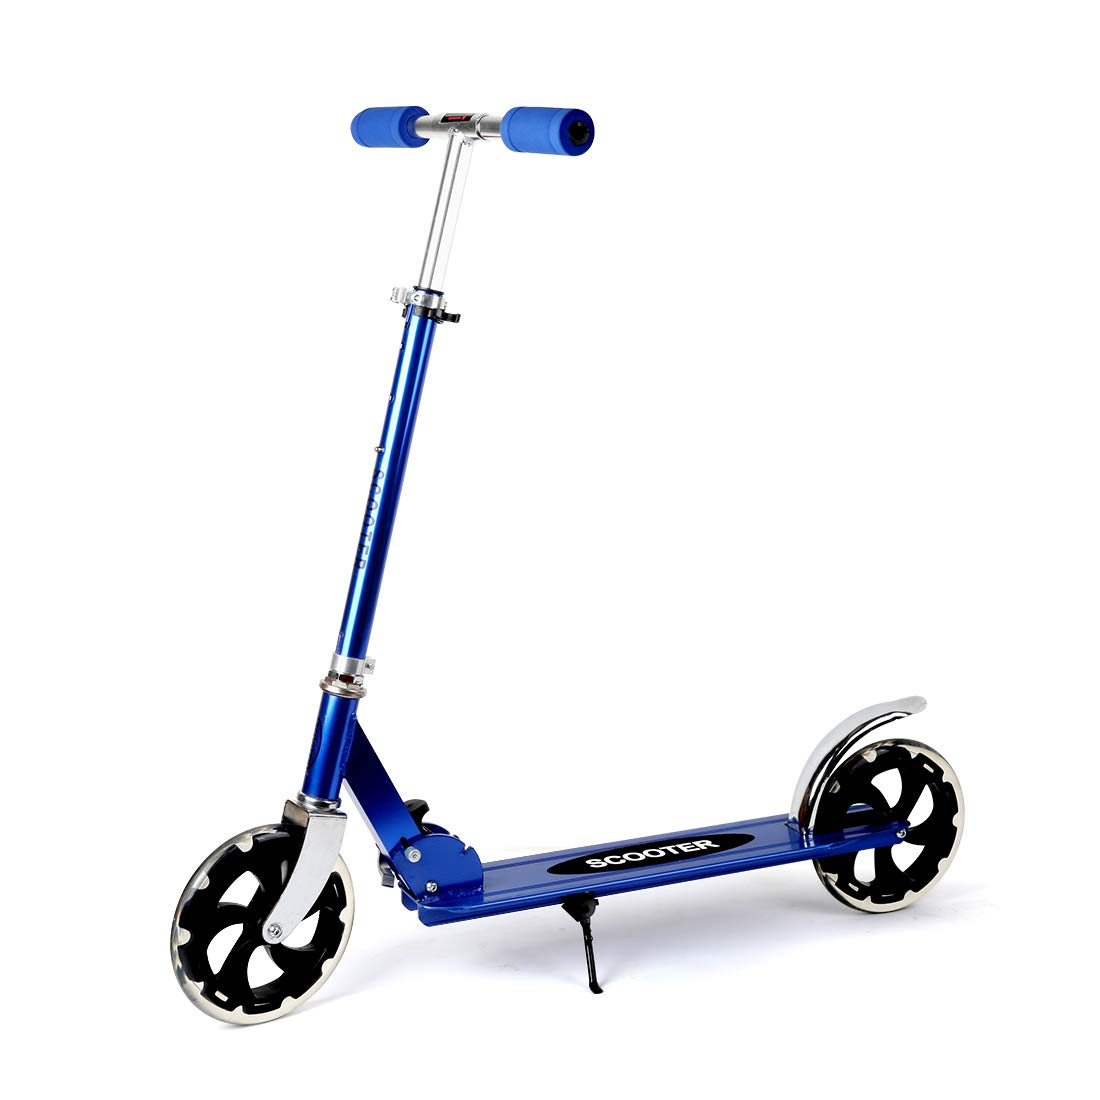 LBLA Scooter for Adults/Teens, Big Wheels Scooter Easy Folding Kick Scooter Durable Push Scooter Support 220lbs Suitable for Age 8 Up Kids (Blue) by LBLA